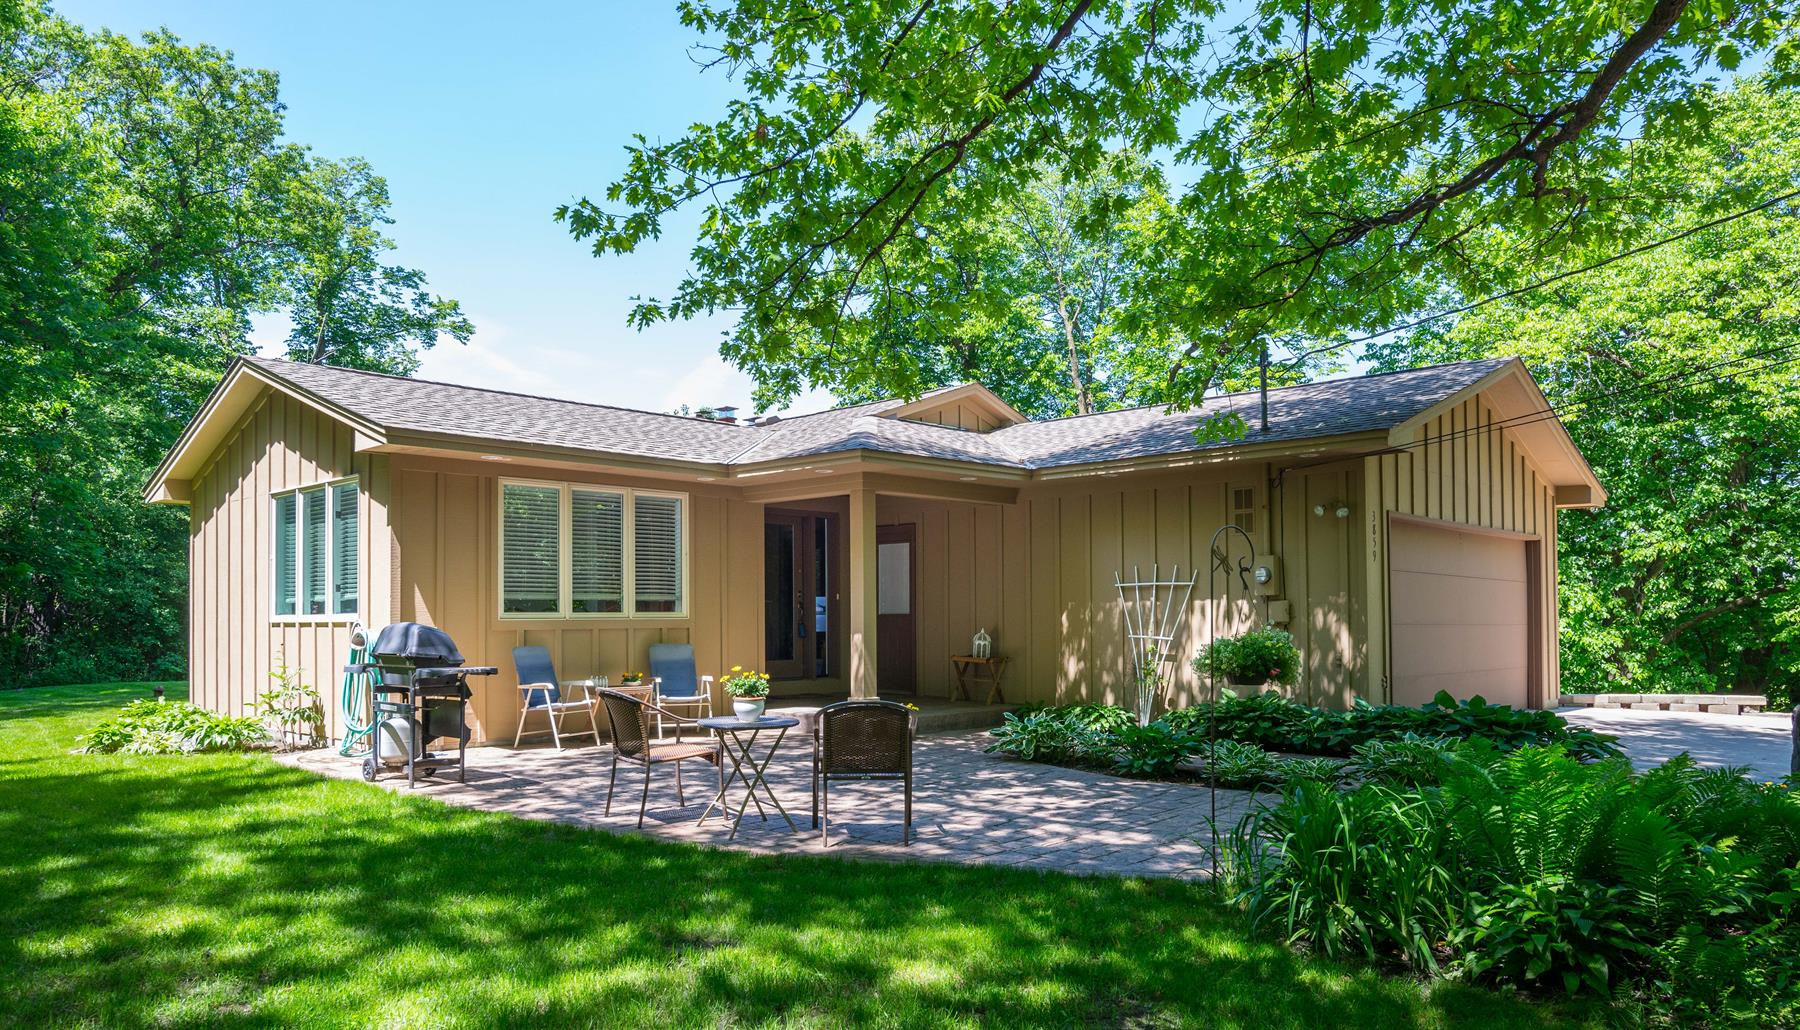 Single Family Home for Sale at 3859 Red Cedar Point Road Chanhassen, Minnesota 55331 United States